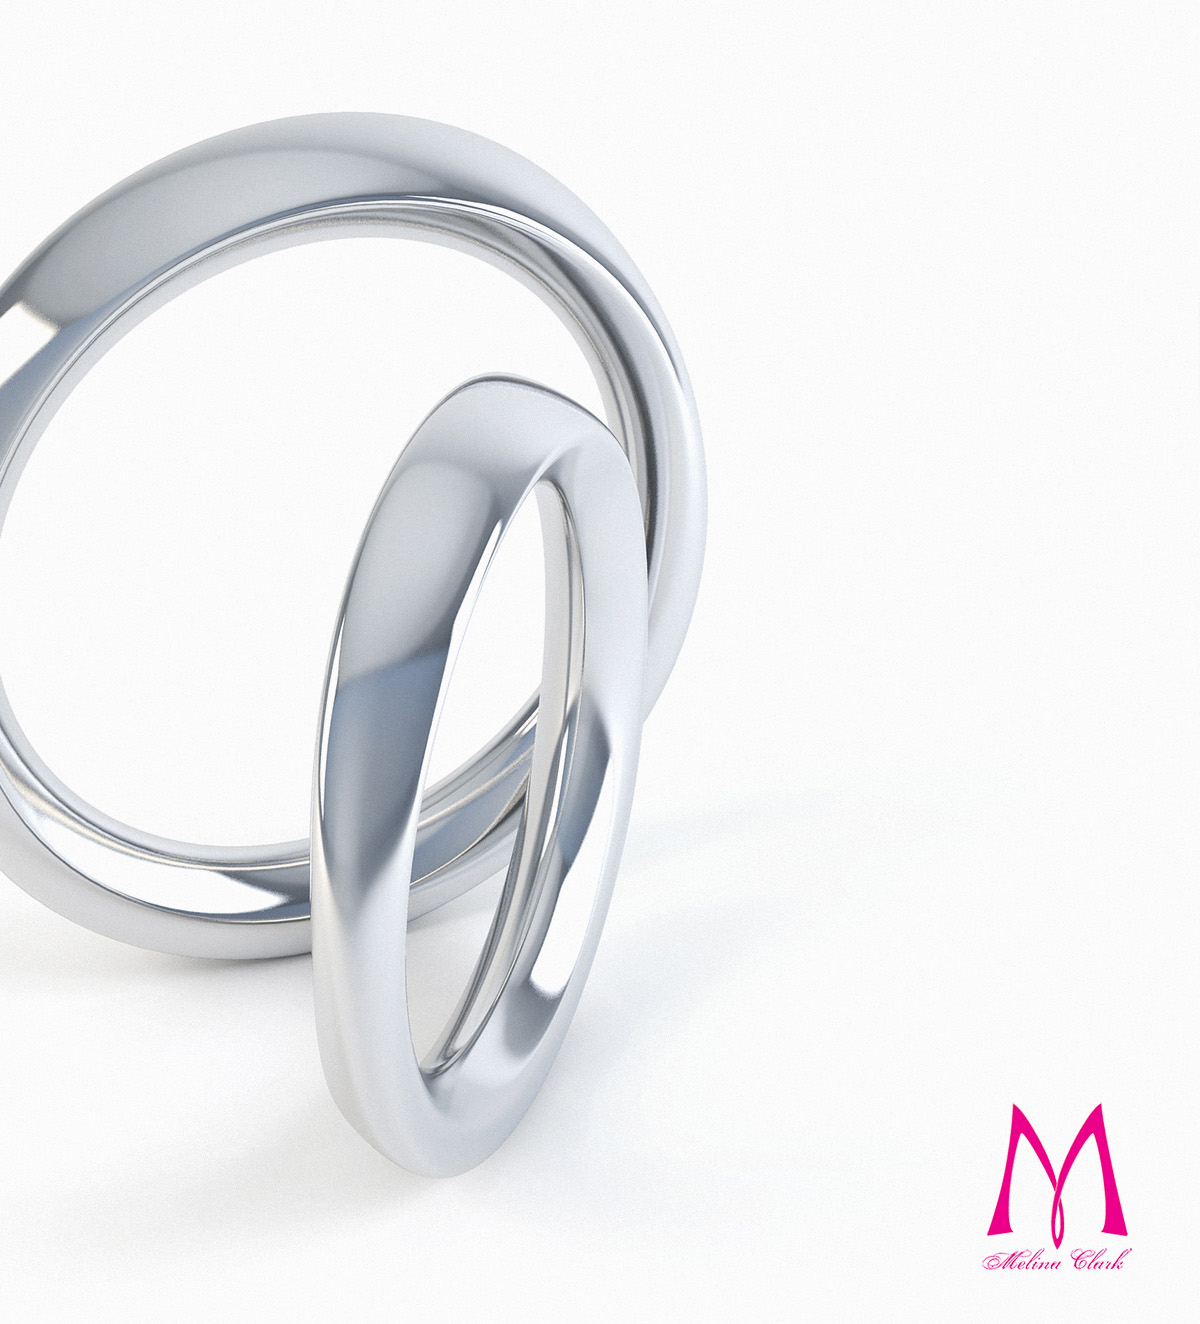 Melina_Clark_Eternity_Twist_ring_1001.jpg